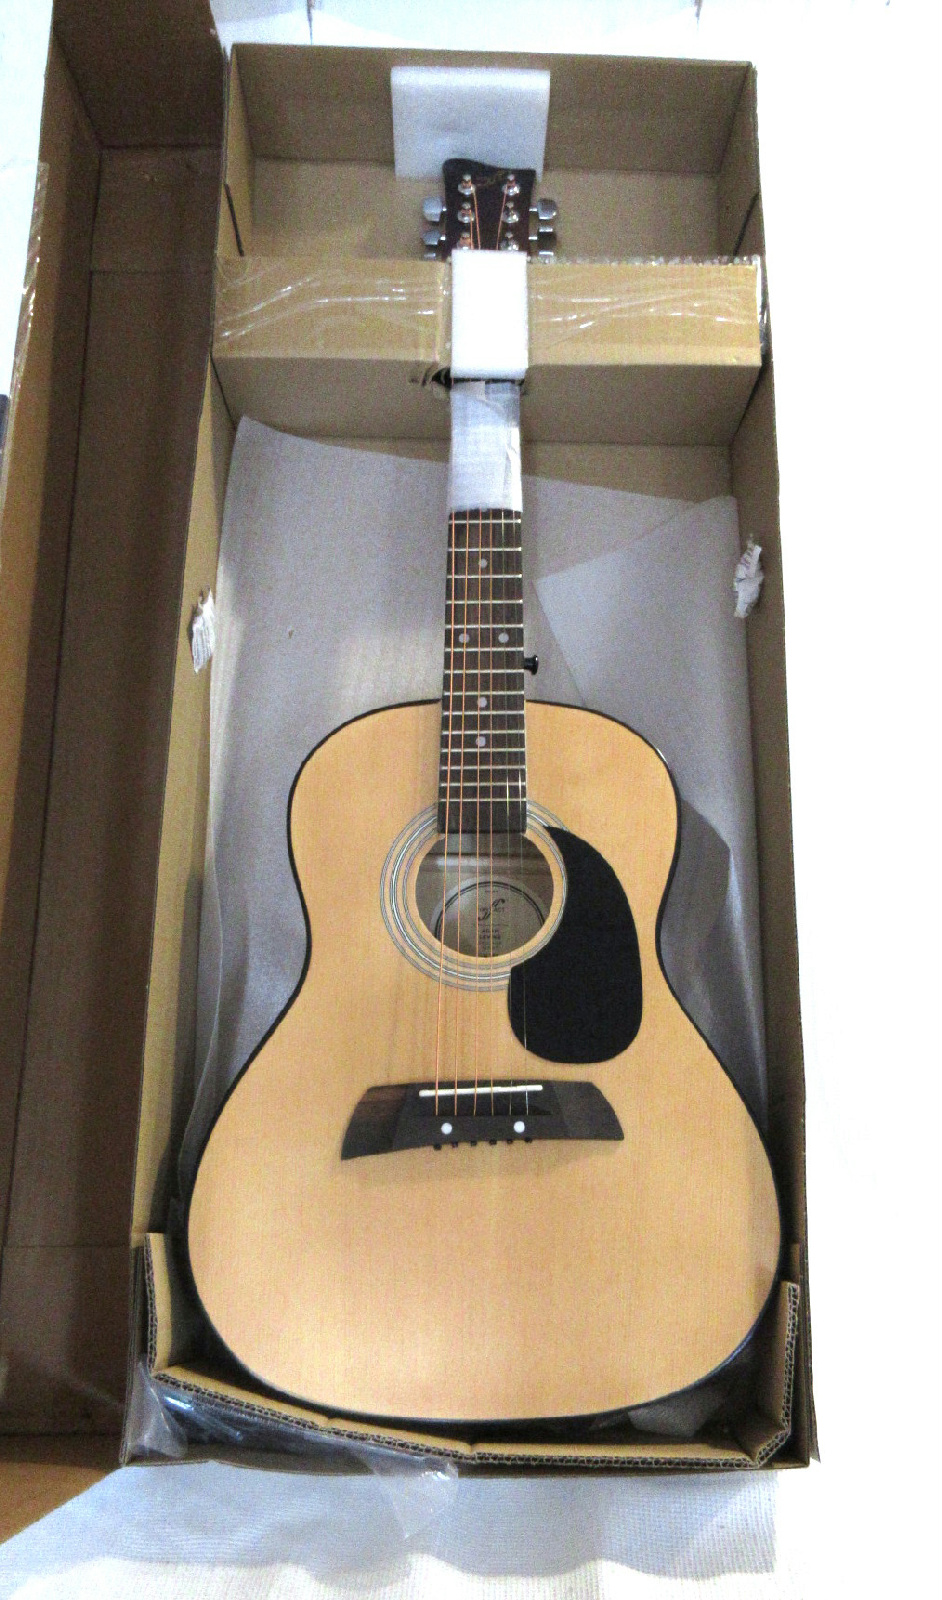 new first act adam levine designer series acoustic guitar with strap and picks ebay. Black Bedroom Furniture Sets. Home Design Ideas